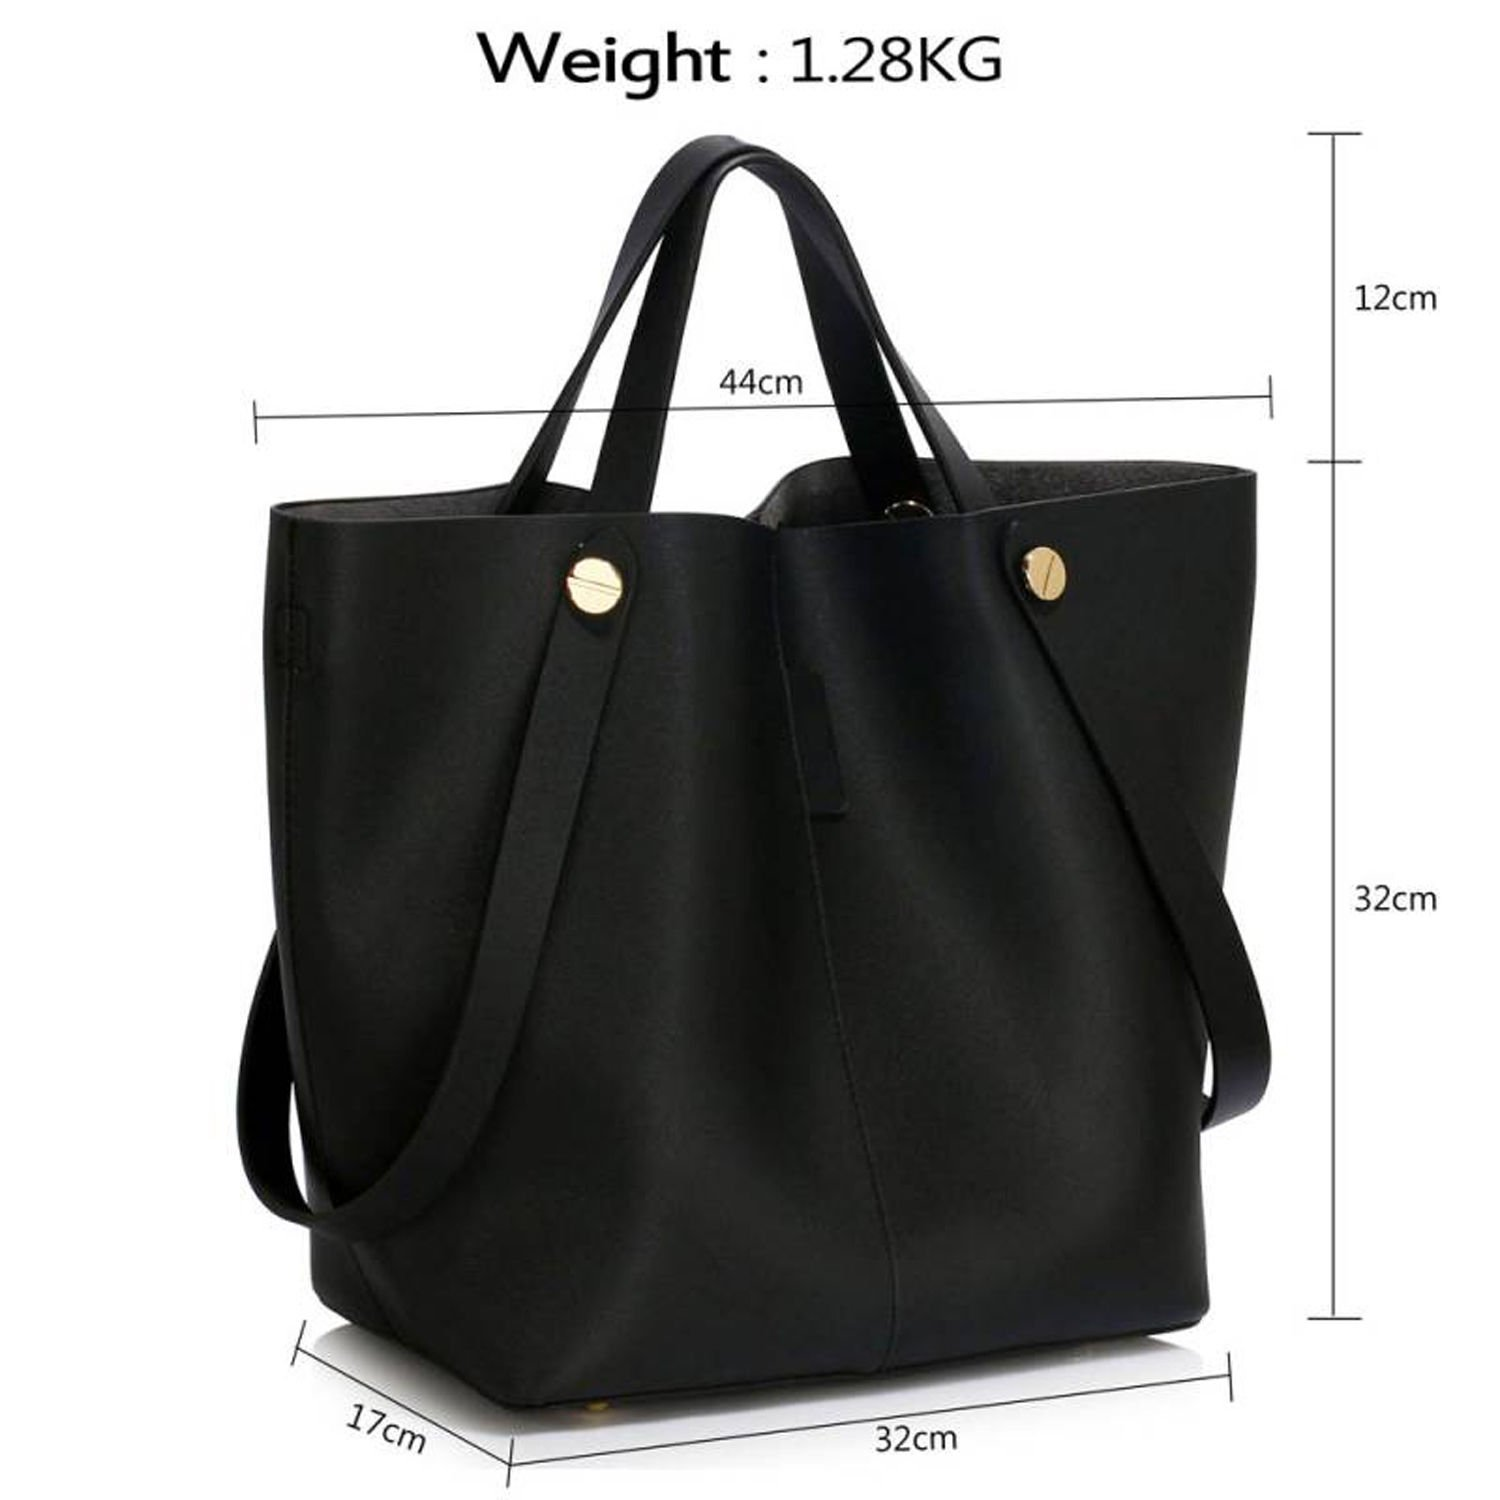 10277250a81 Xardi London Women Tote Shoulder Bag Large Ladies Handbag Faux Leather Hobo  Twin Handles Holds A4 Folders Books Must Have Gift for Girls School College